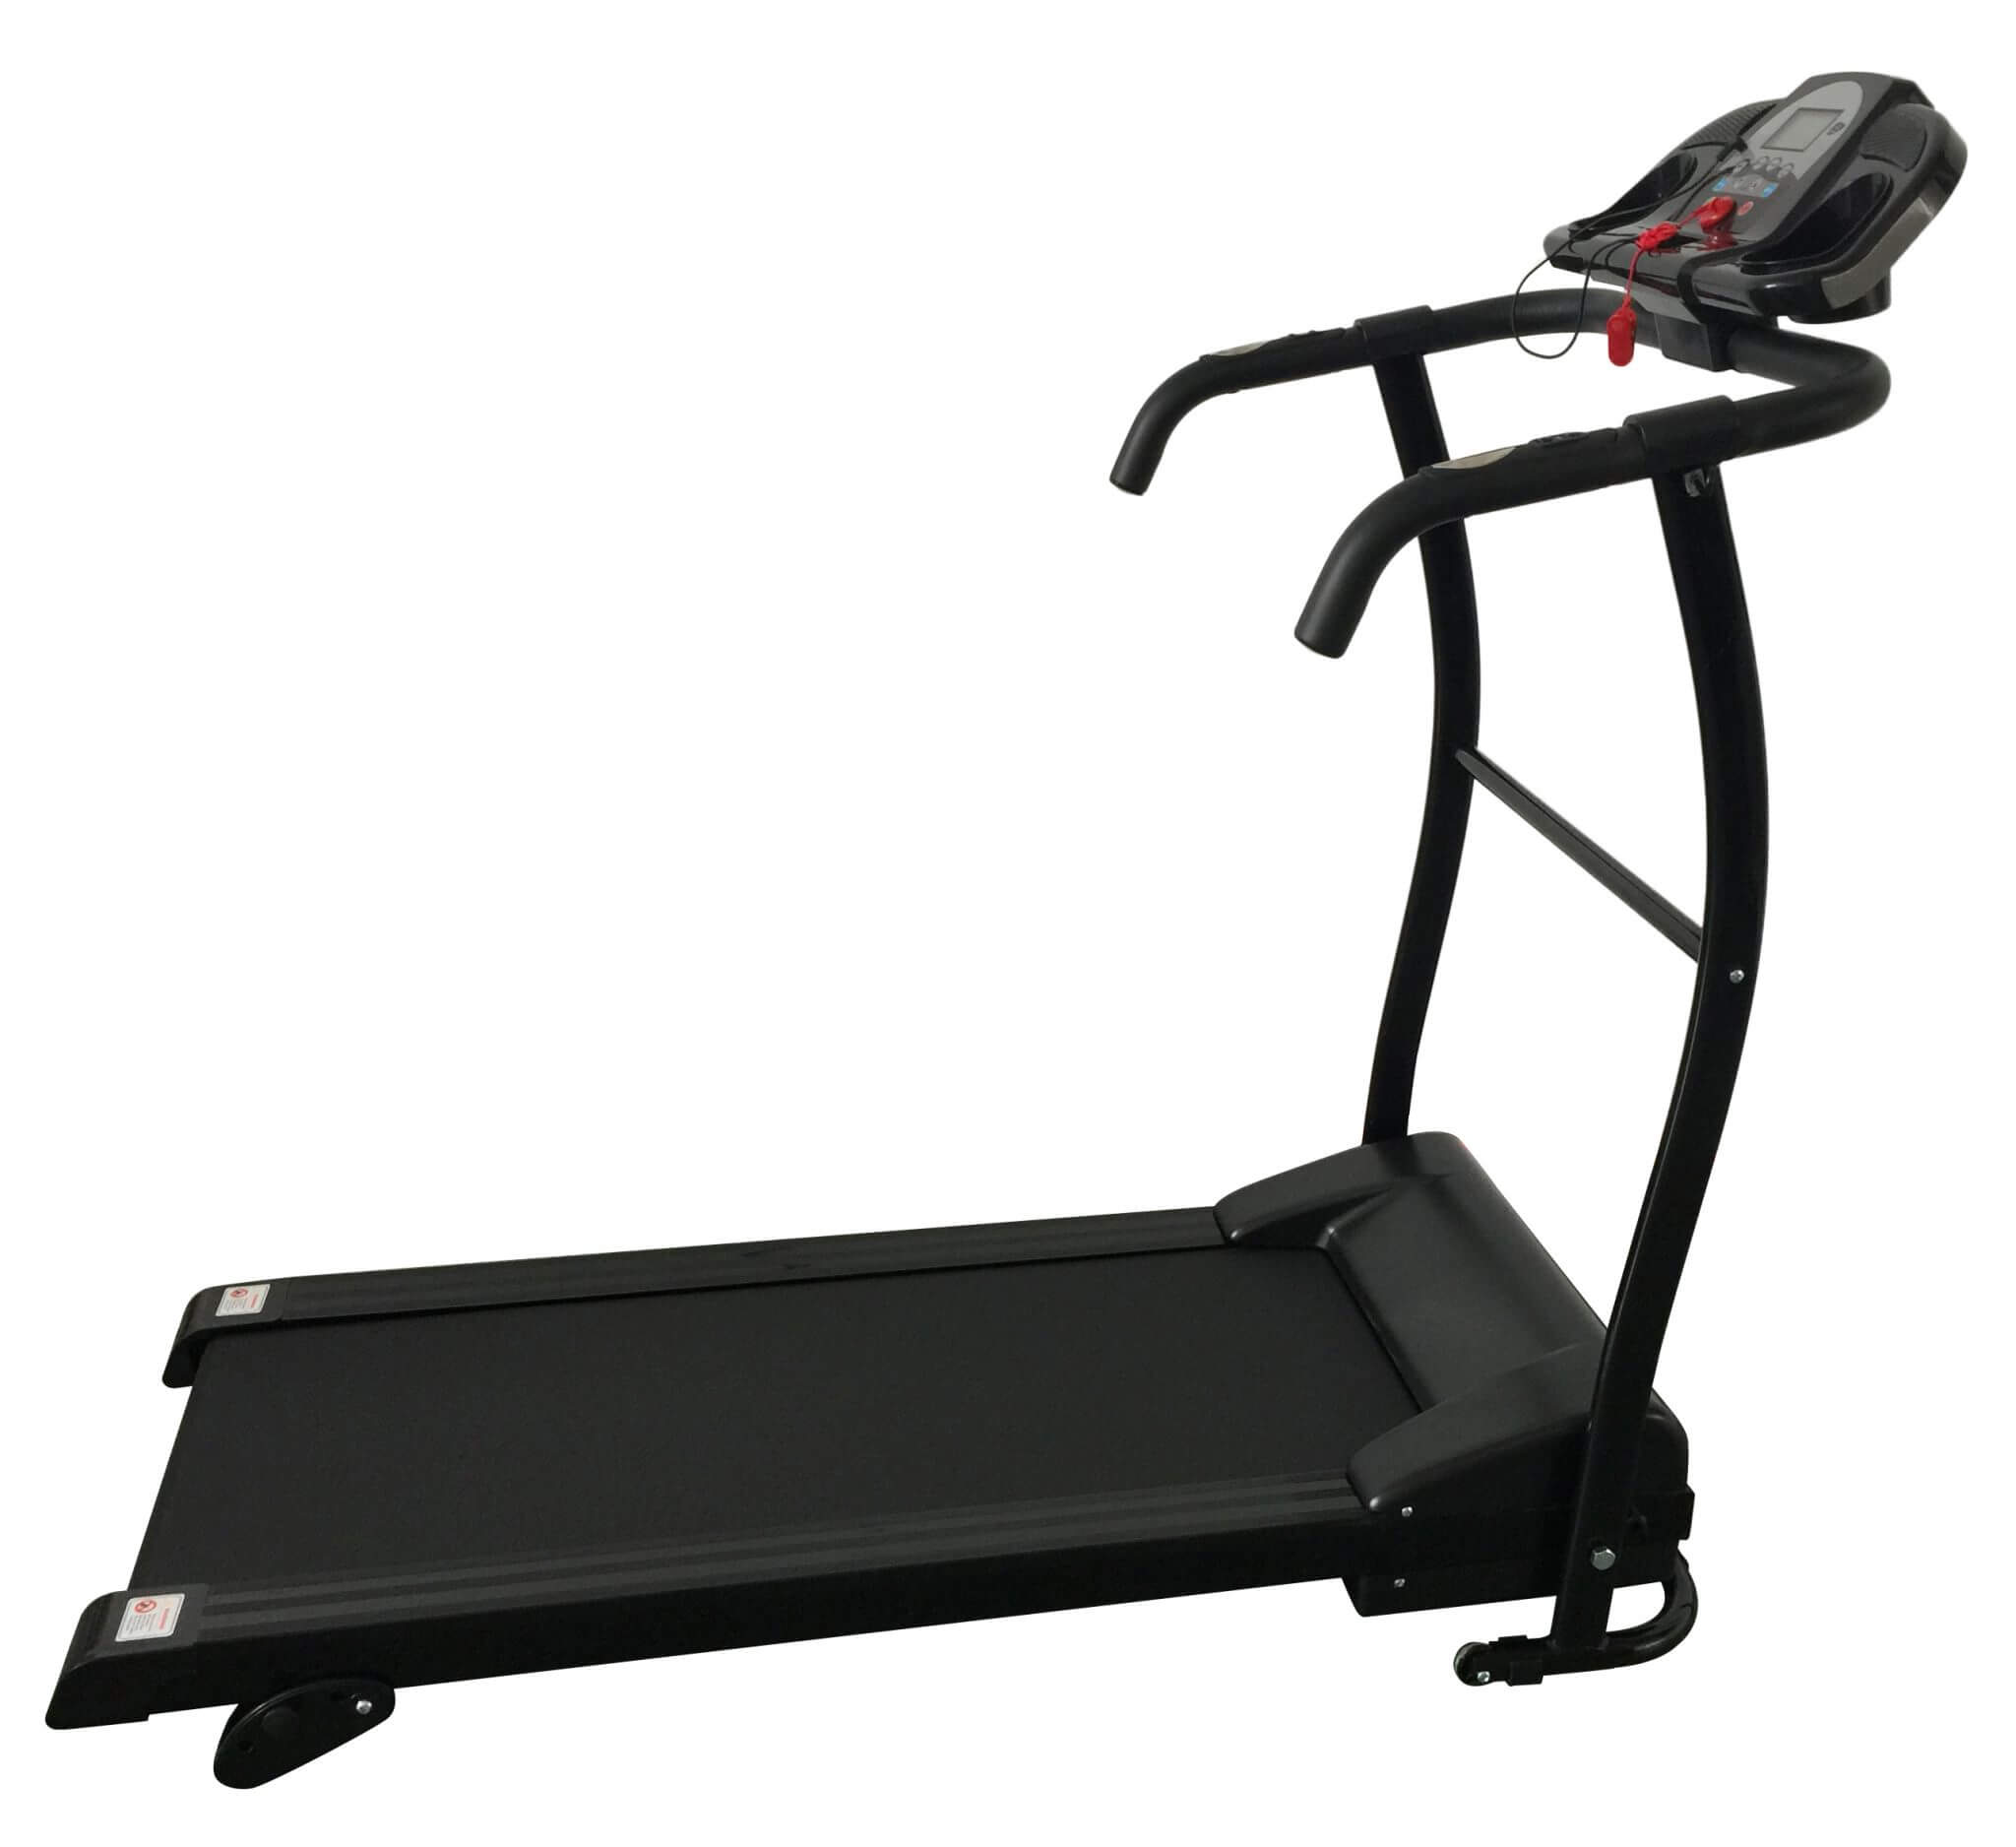 Fitness NRG-100 Power Pro Fitness Treadmill